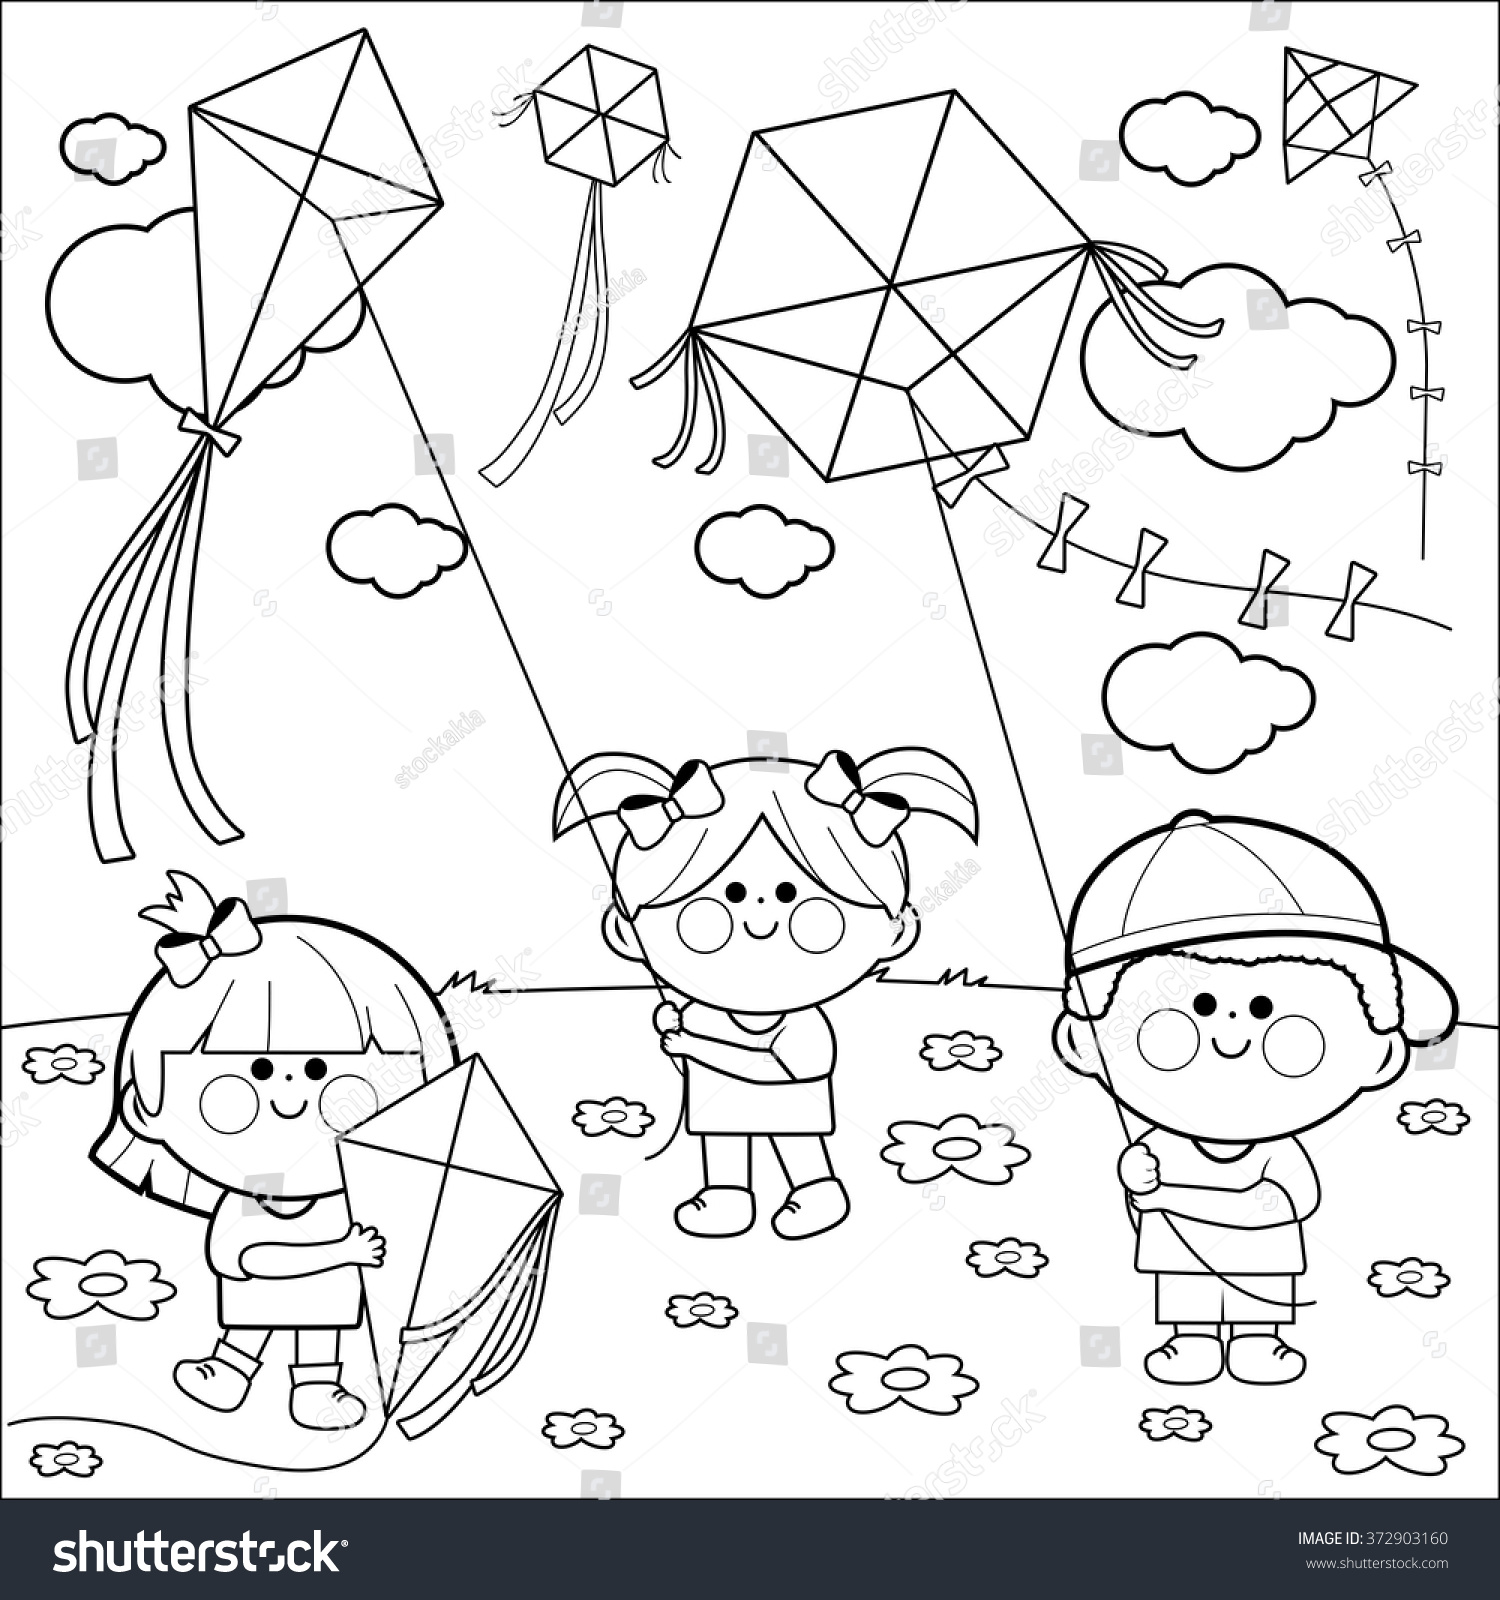 Vector Black And White Illustration Of Children Playing